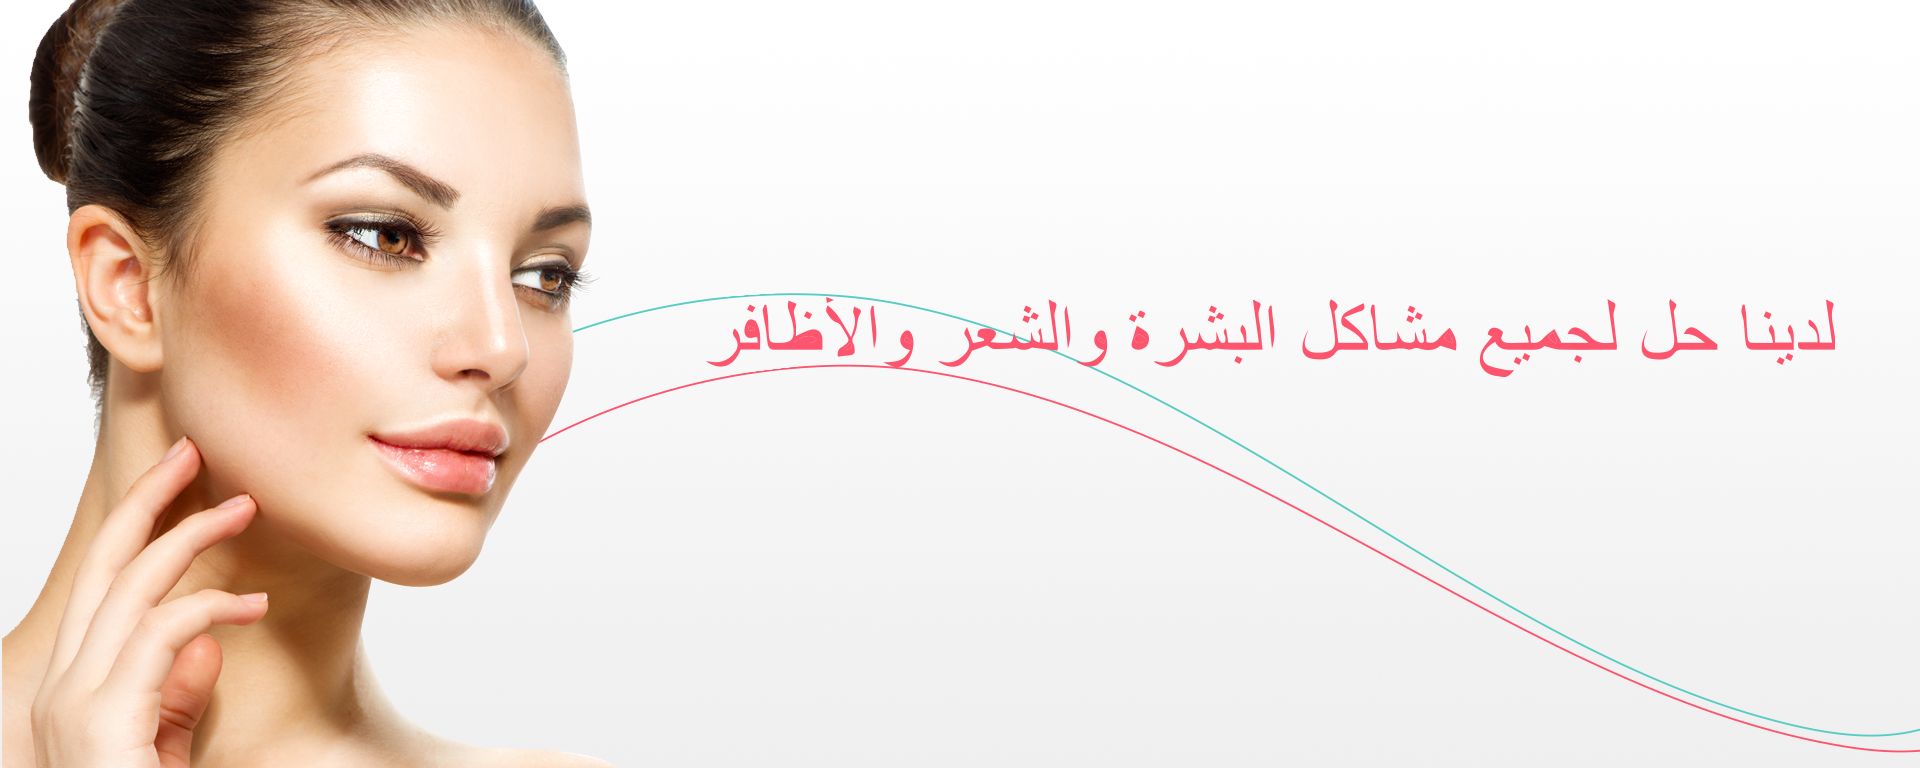 Skin Specialist In Uae Https Cosmo Laser Com Dermatologists By Imtell Brand Consultants Medium